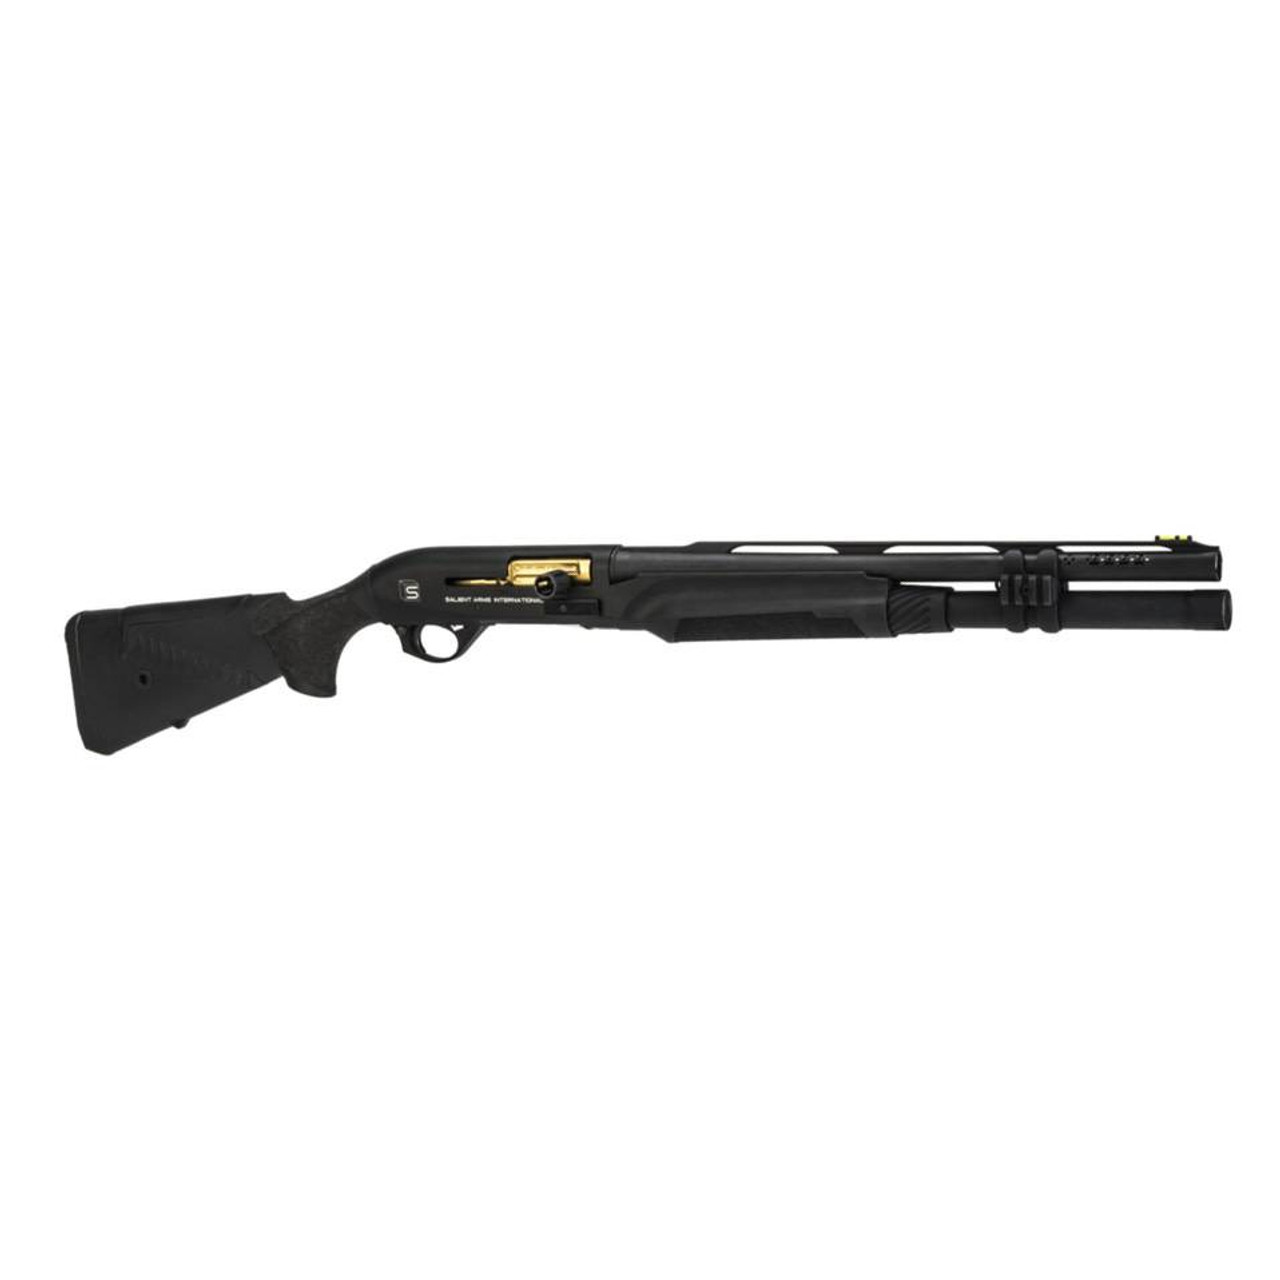 "Salient Arms Benelli M2 18.5"" Tactical Package S-Porting"